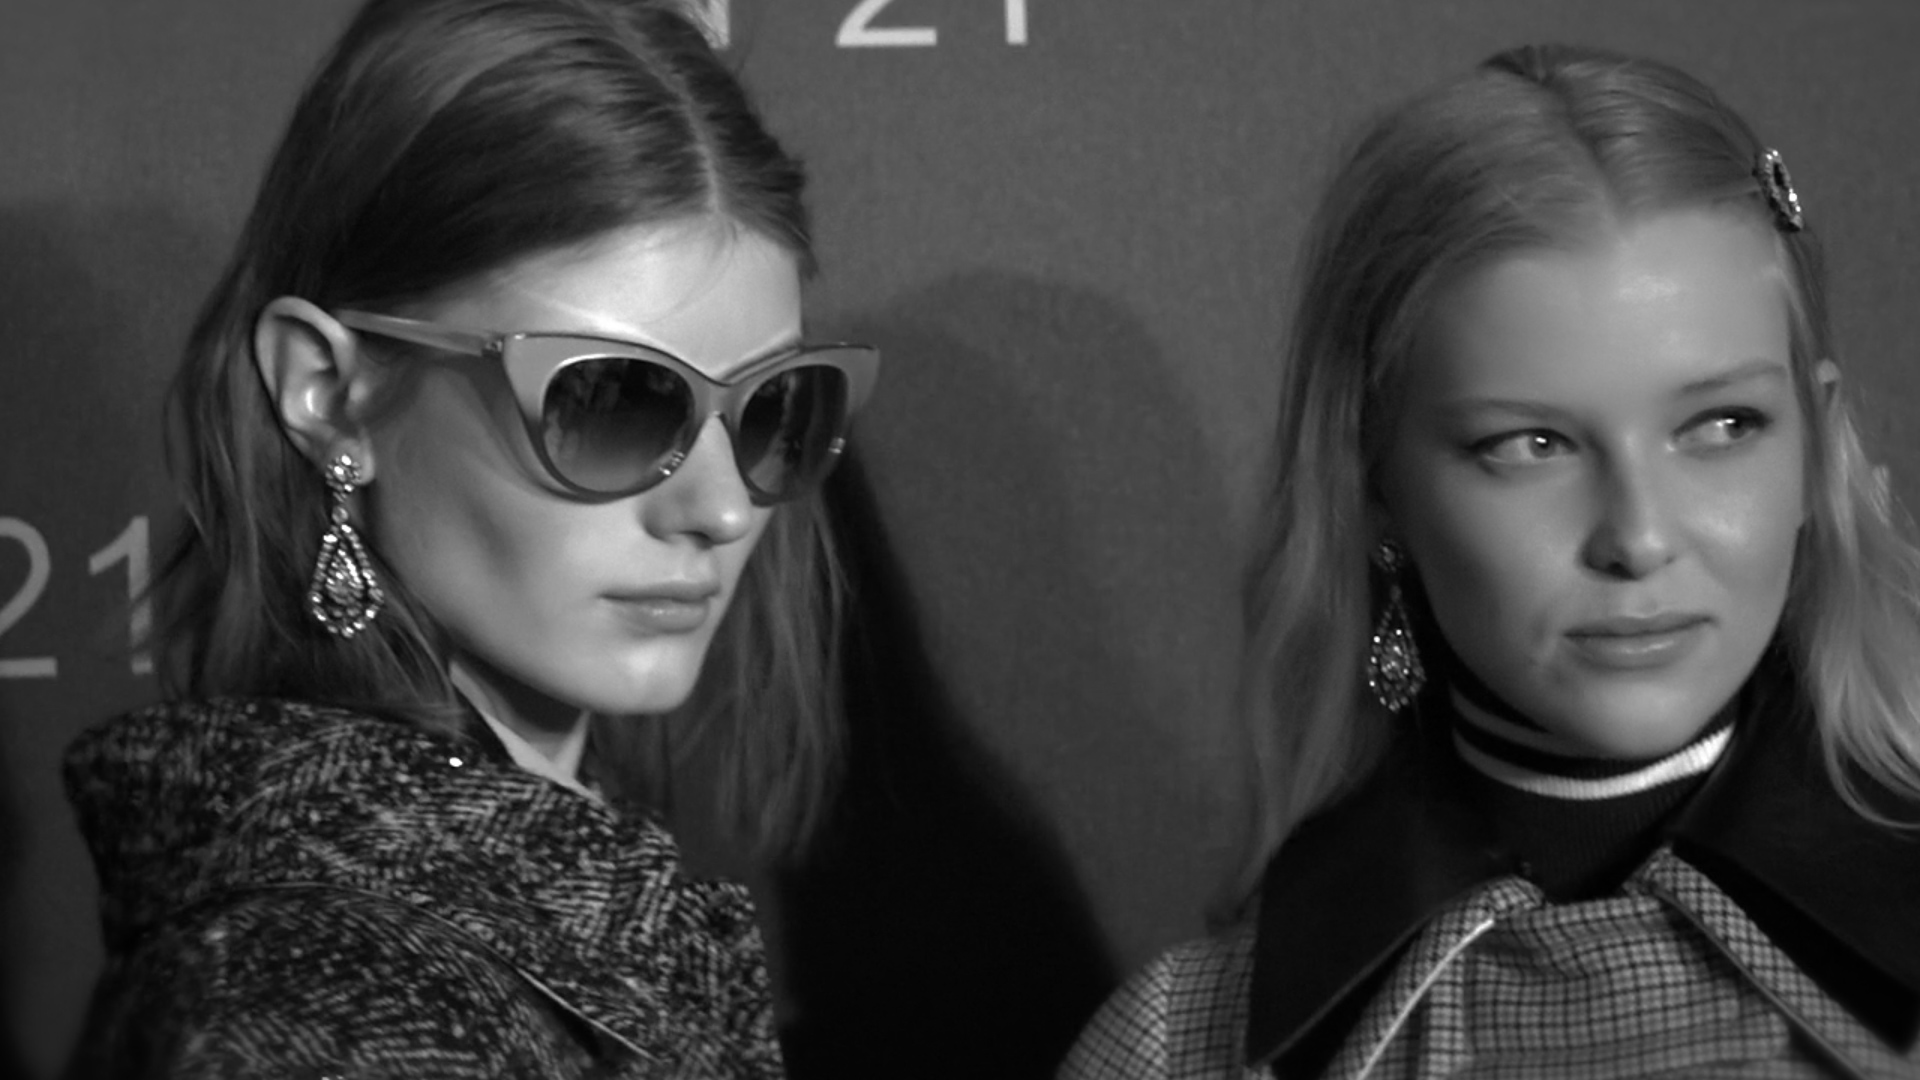 N21 Fall Winter 2017 2018 backstage in 60 seconds.